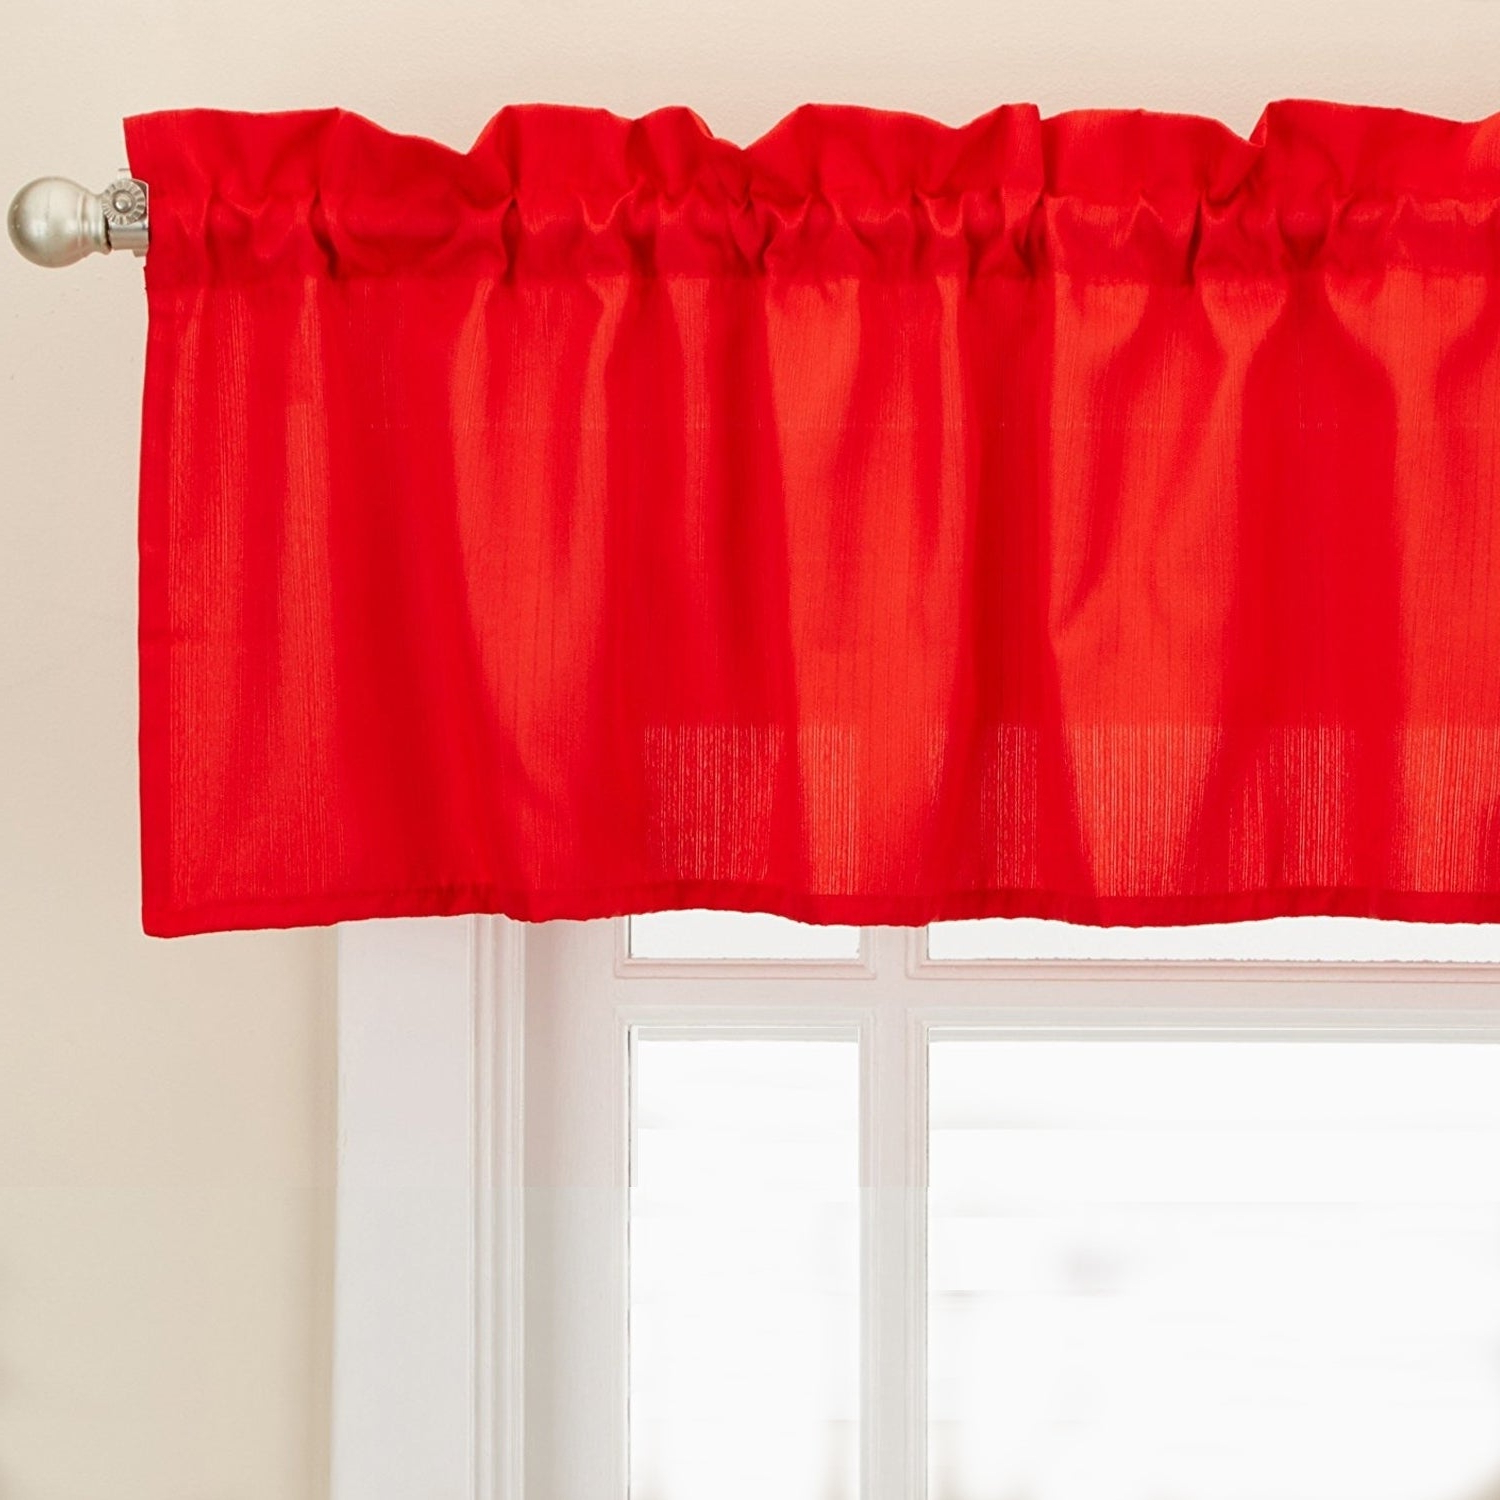 Newest Opaque Red Ribcord Kitchen Curtain Pieces – Tiers/ Valances/ Swags Pertaining To 5 Piece Burgundy Embroidered Cabernet Kitchen Curtain Sets (View 17 of 20)